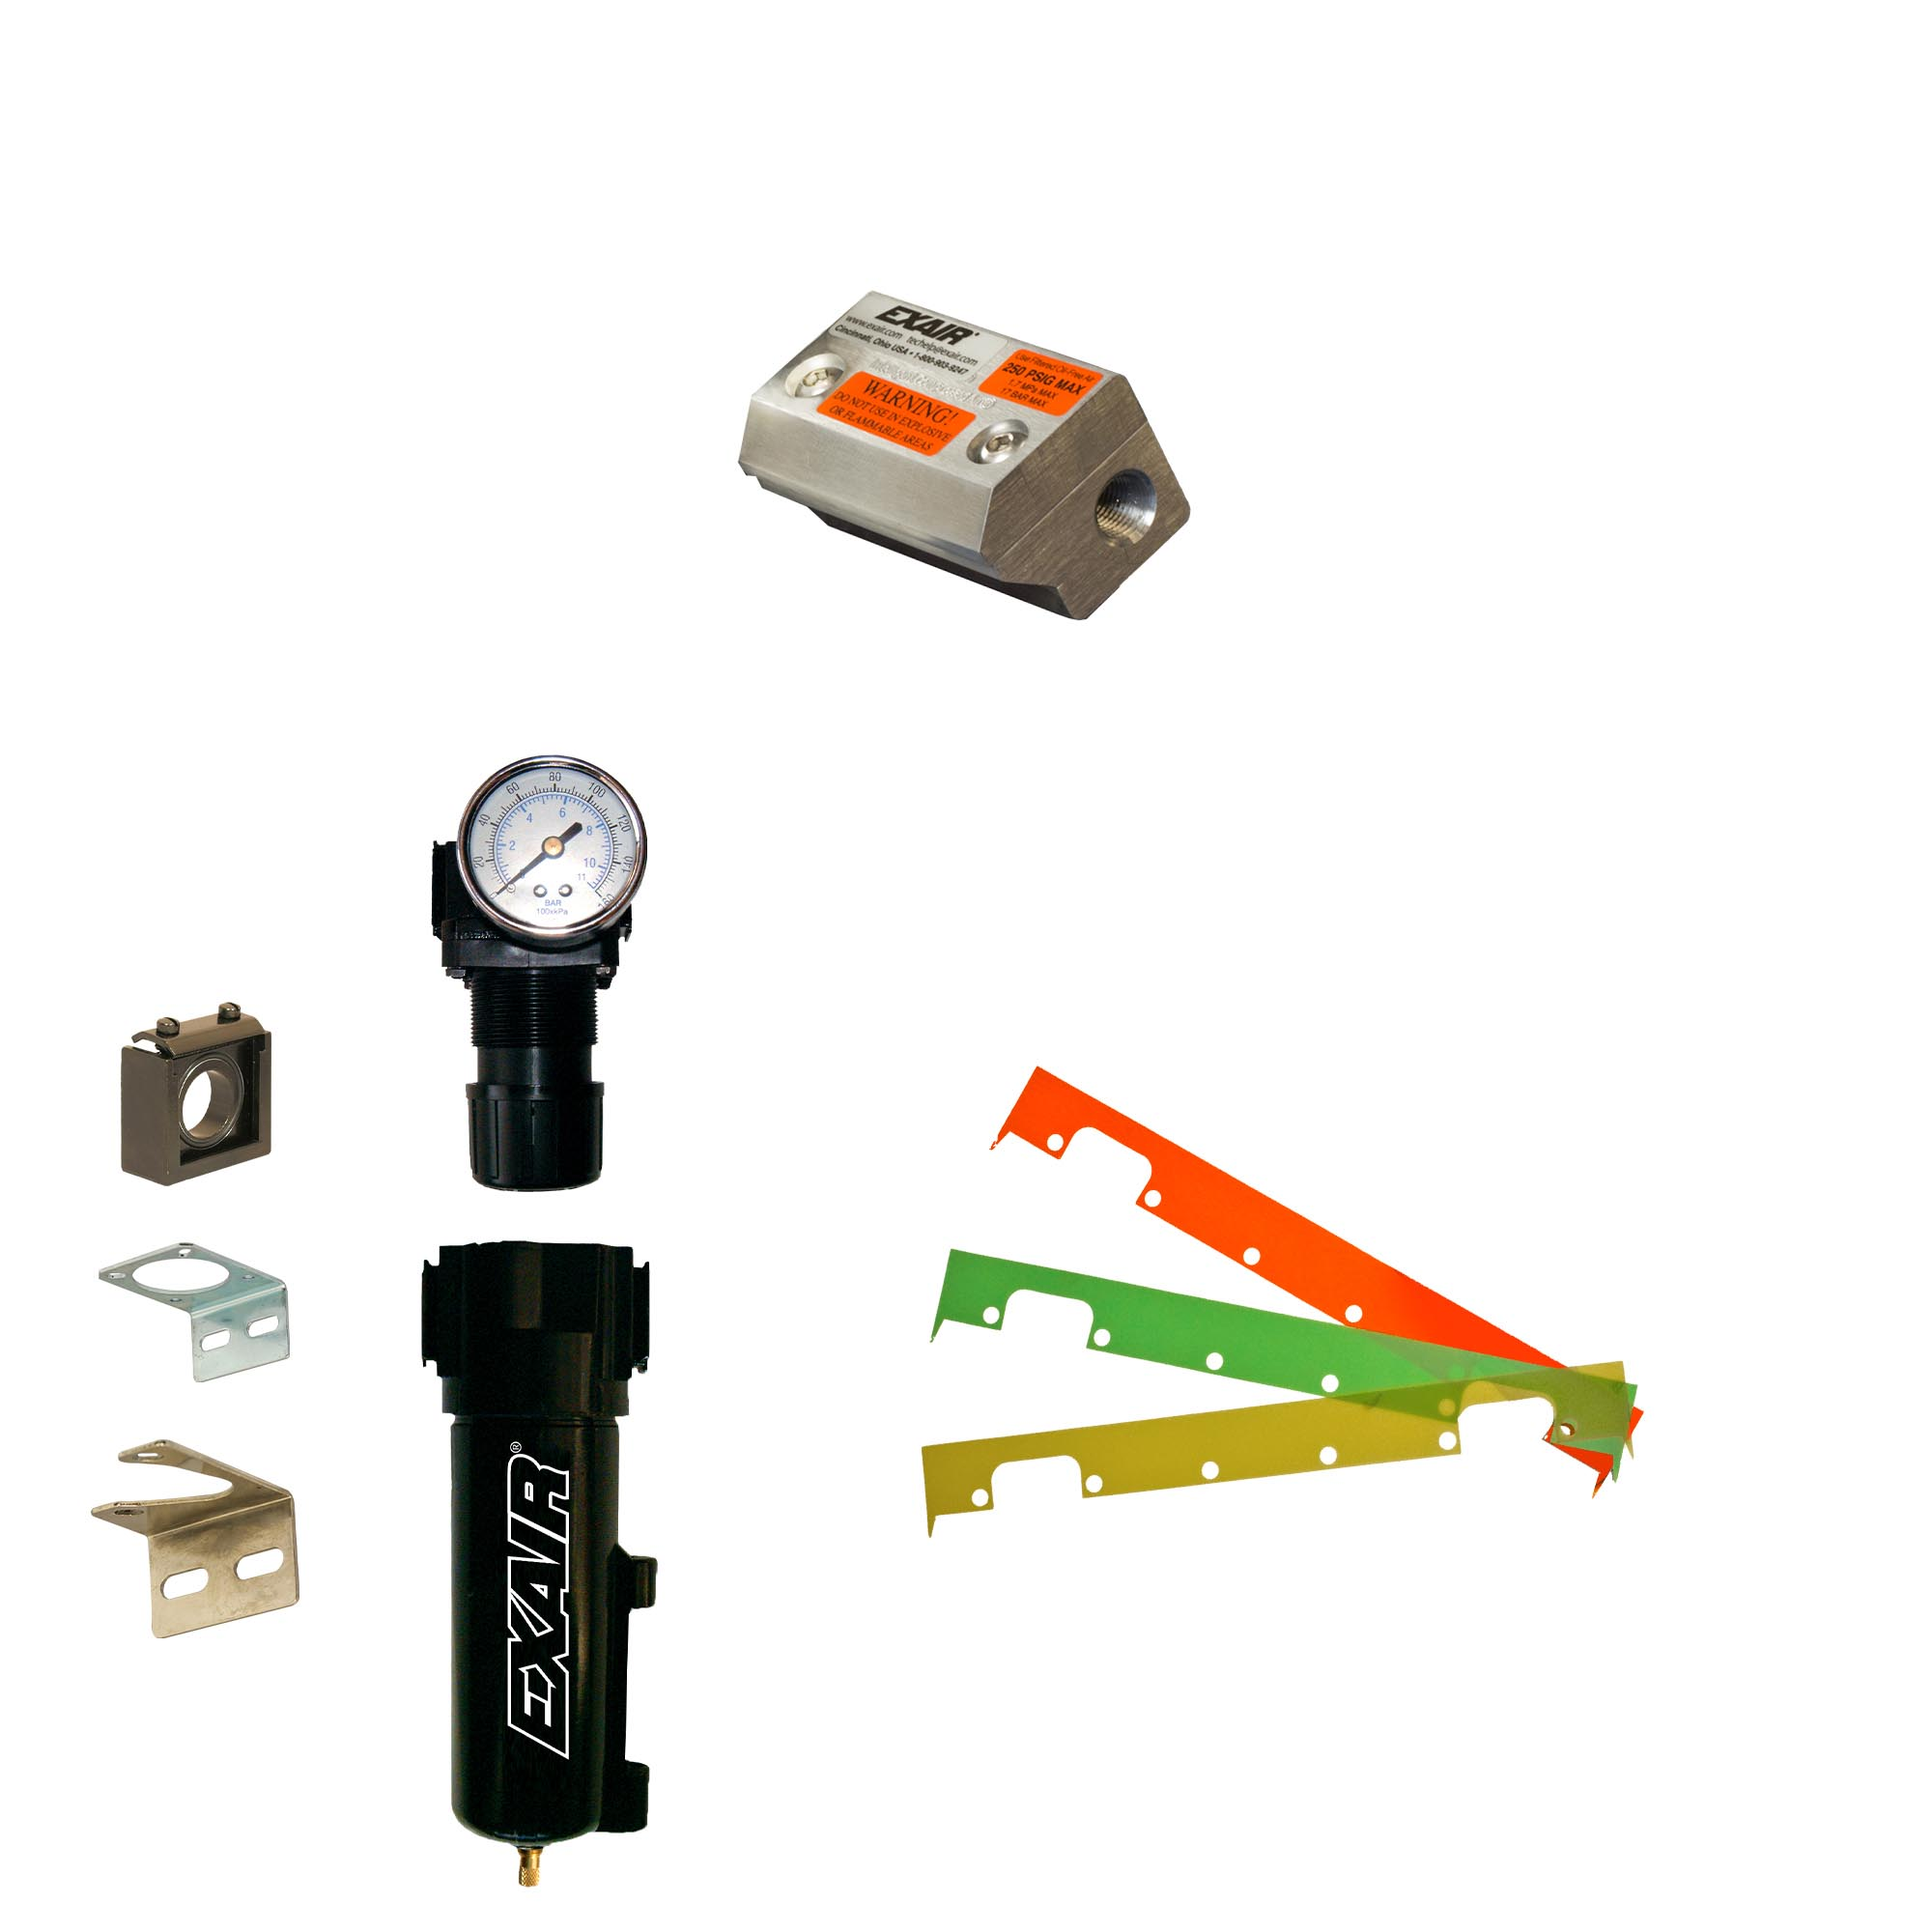 Every aluminum, stainless steel or PVDF Super Air Knife Kit includes the Super Air Knife, Filter, Pressure regulator and appropriate material shim set.